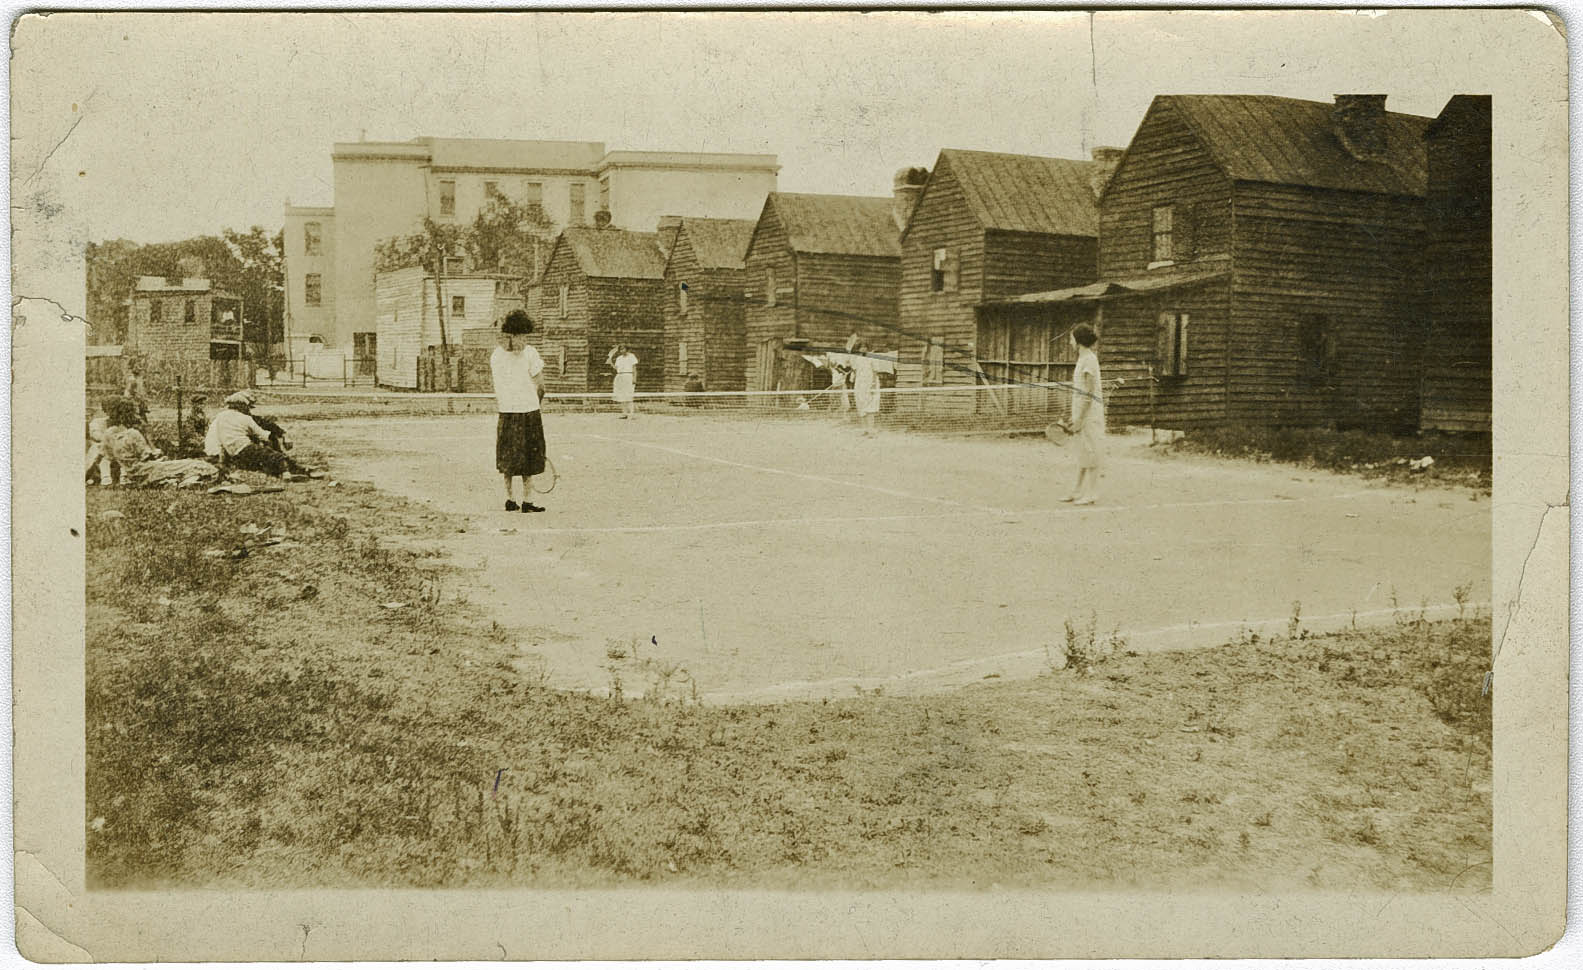 Averyites Play Tennis at the YMCA on Cannon Street